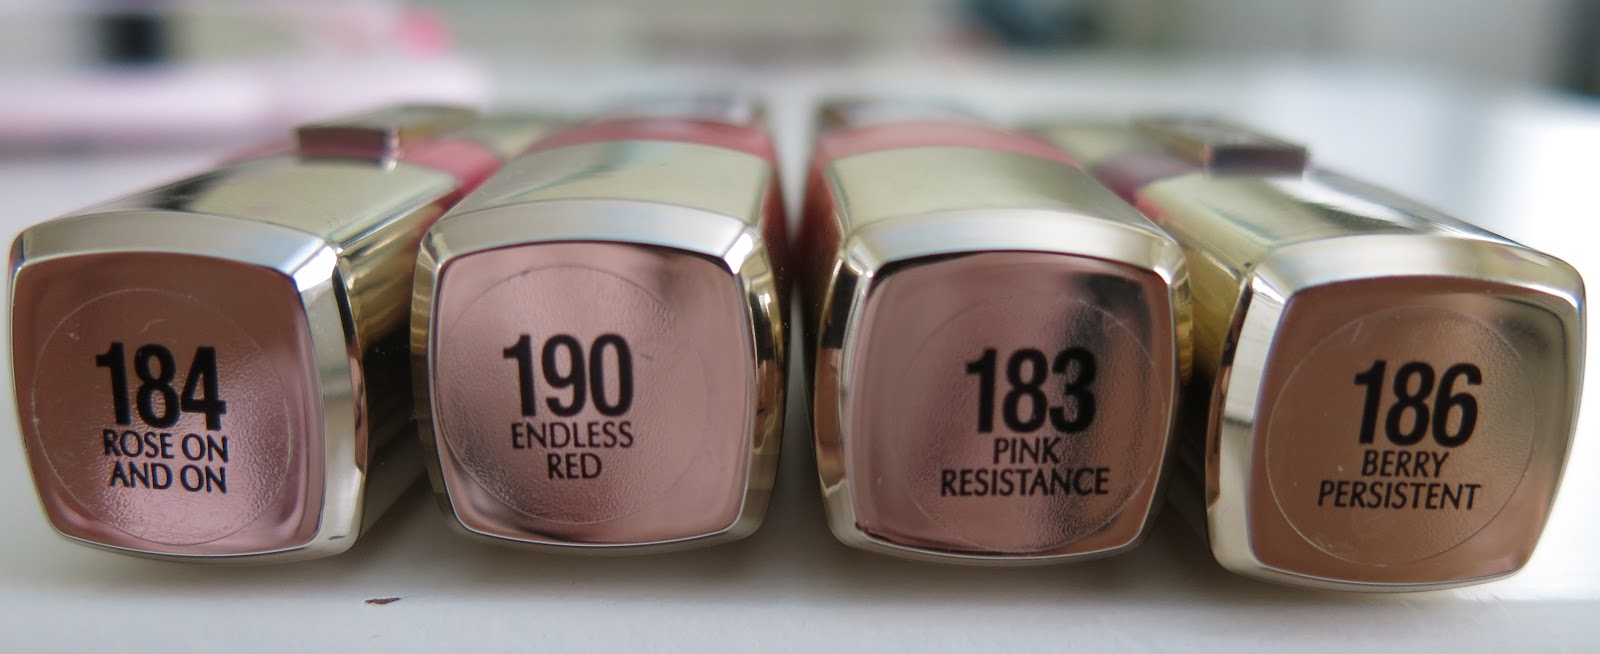 Rose On and On, Endless Red, Berry Persistent, Pink Resistance